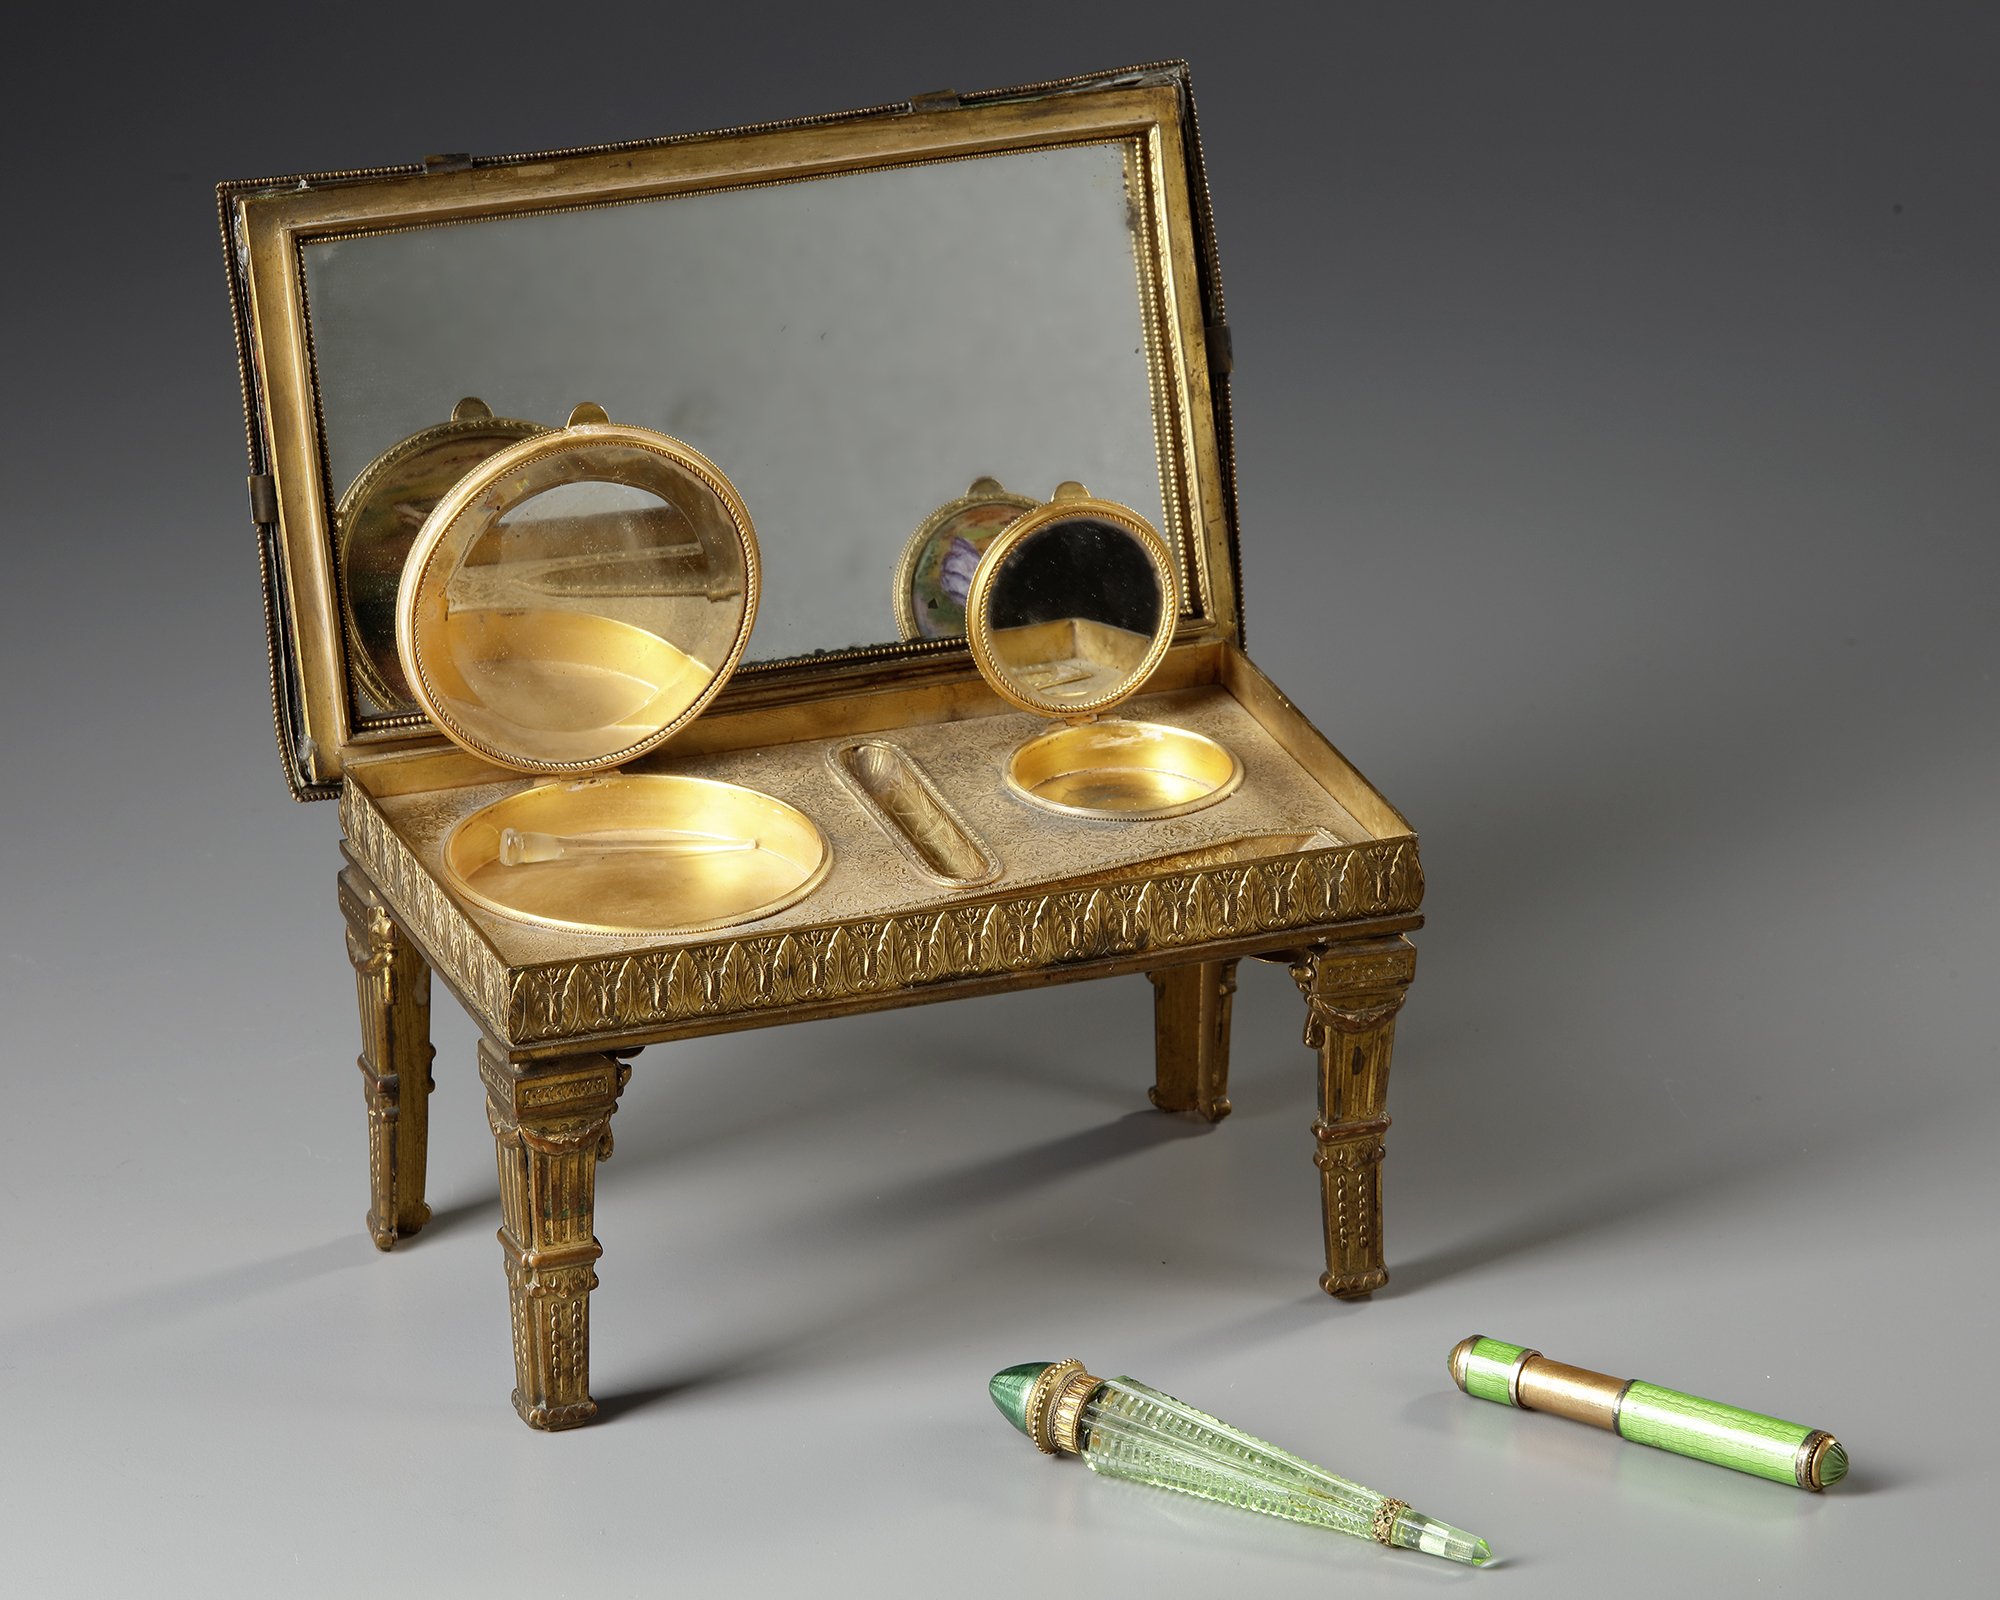 AN AUSTRIAN ENAMEL MINIATURE TABLE WITH PERFUME VIAL, LATE 19TH CENTURY - Image 4 of 5